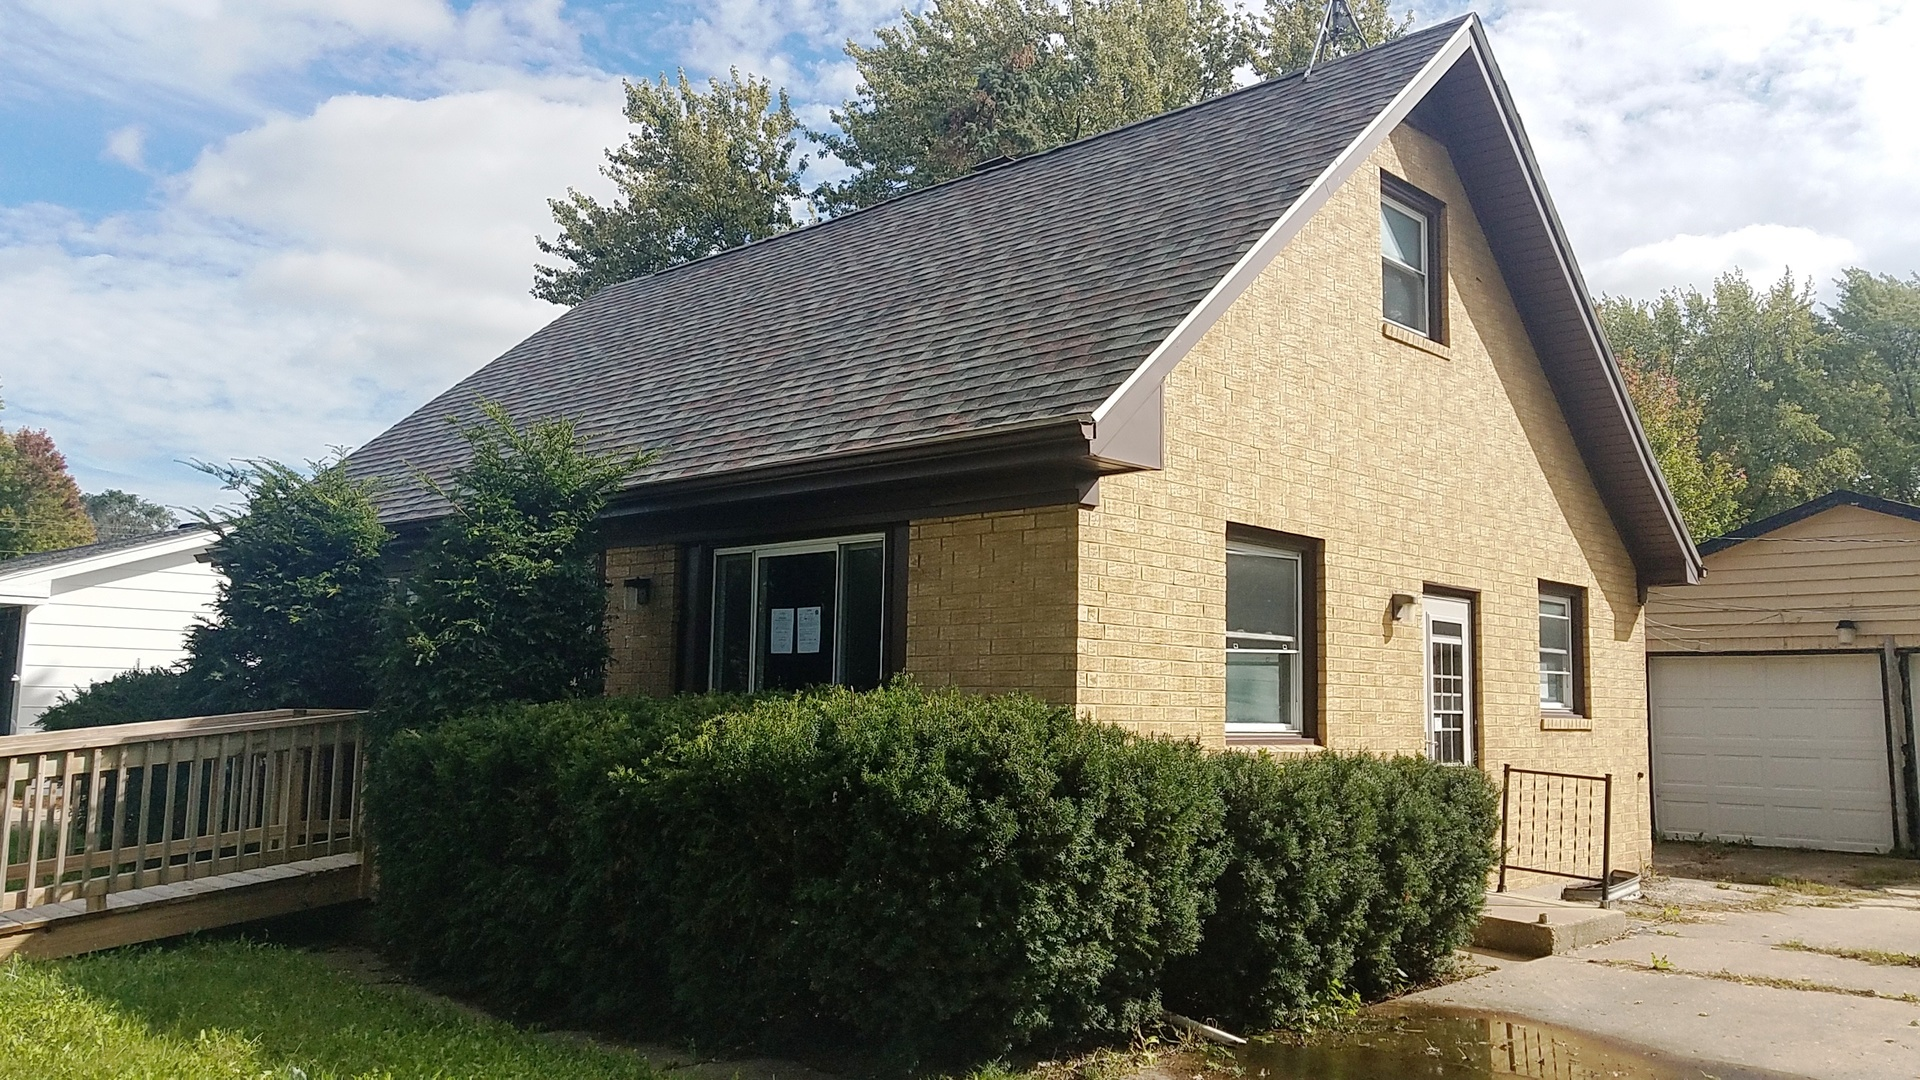 616 West 8th, Belvidere, Illinois, 61008